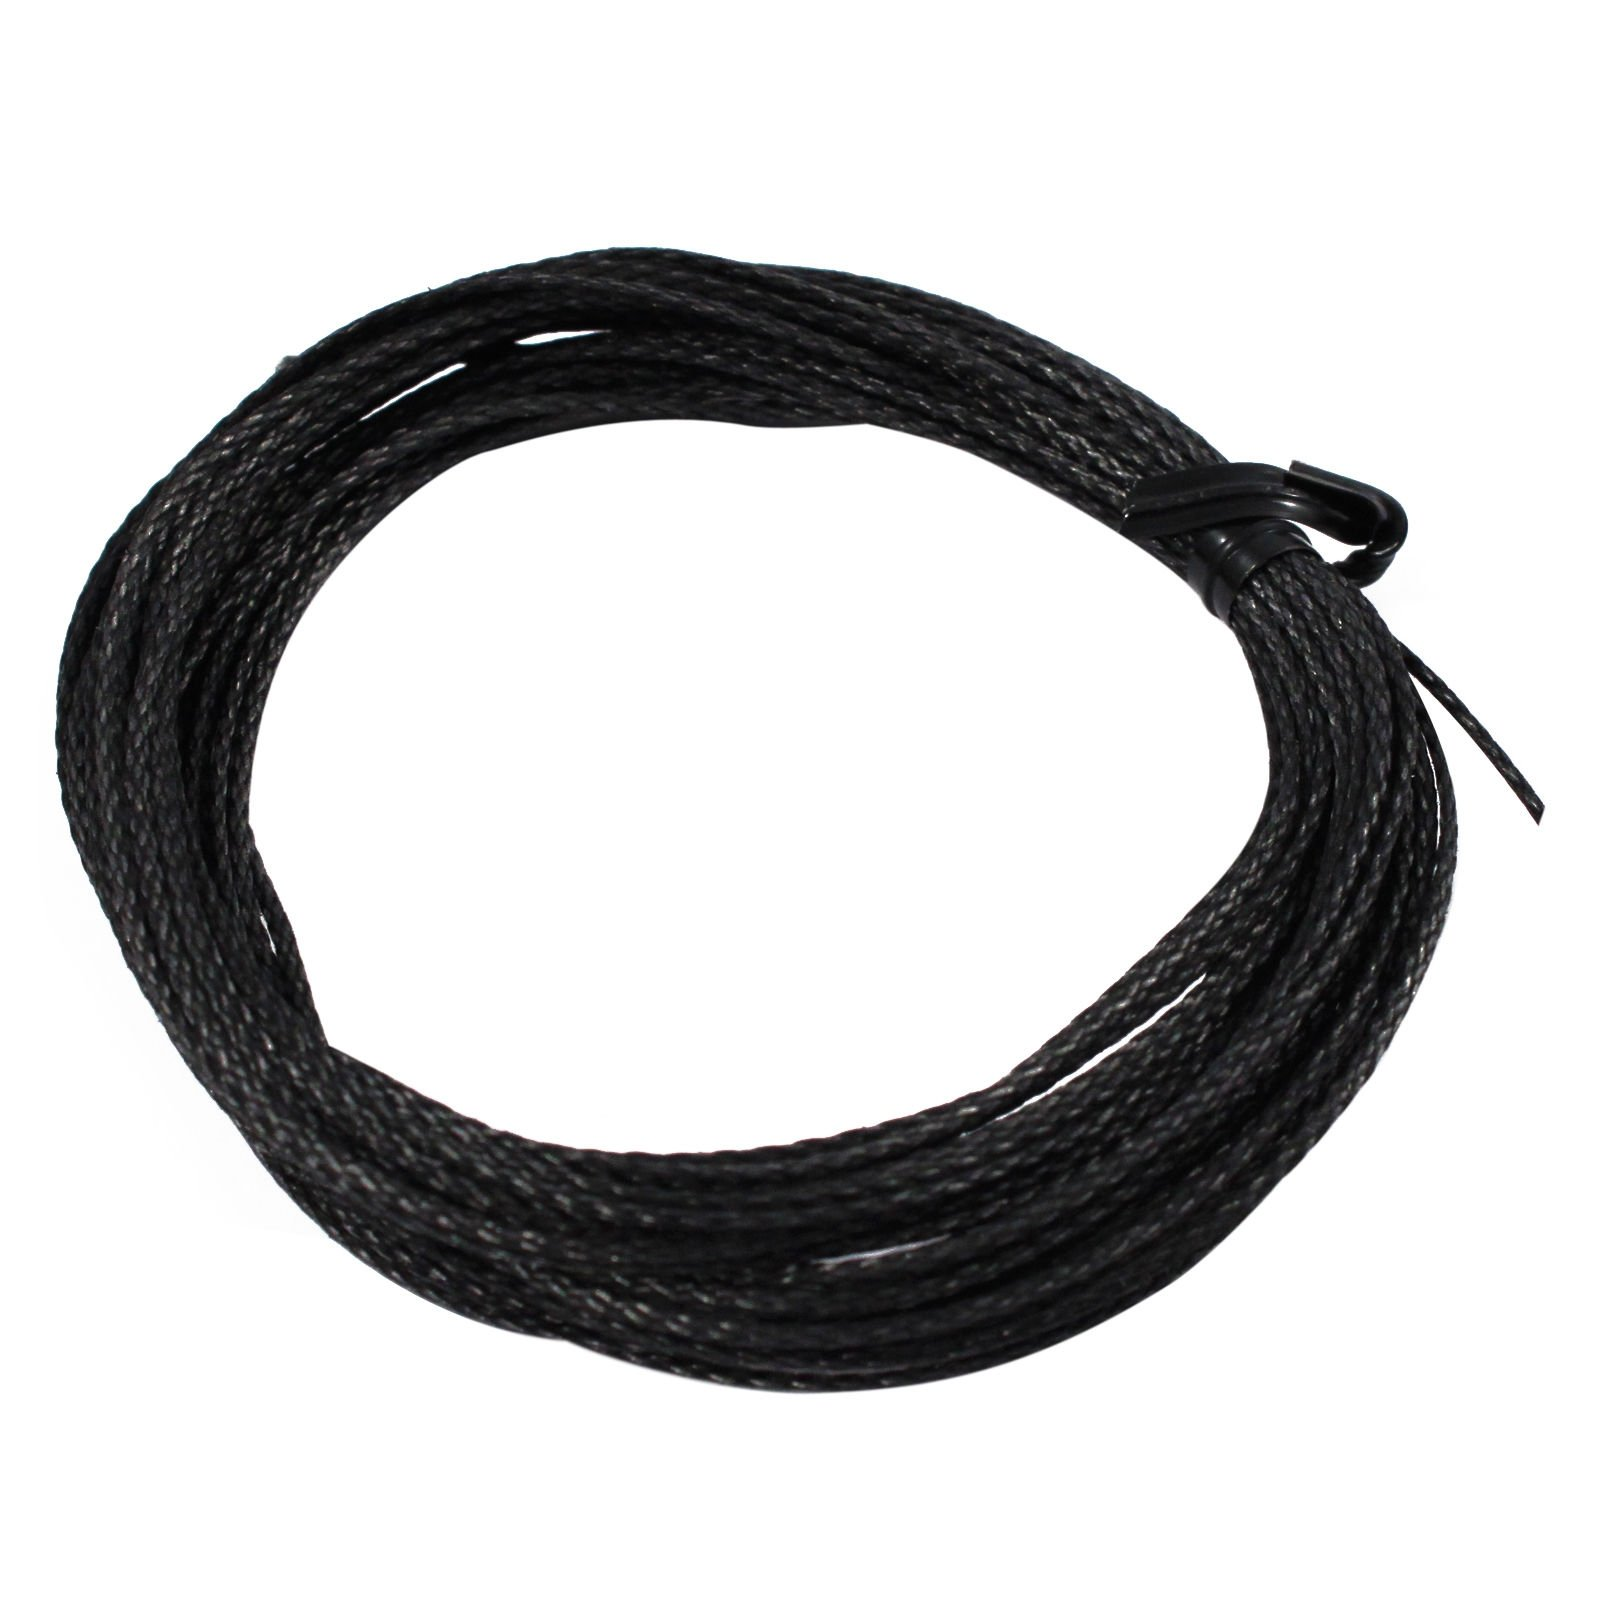 Braided Vectran Survival Sport Tactical Cord 200lb Breaking Strength - 100 Feet